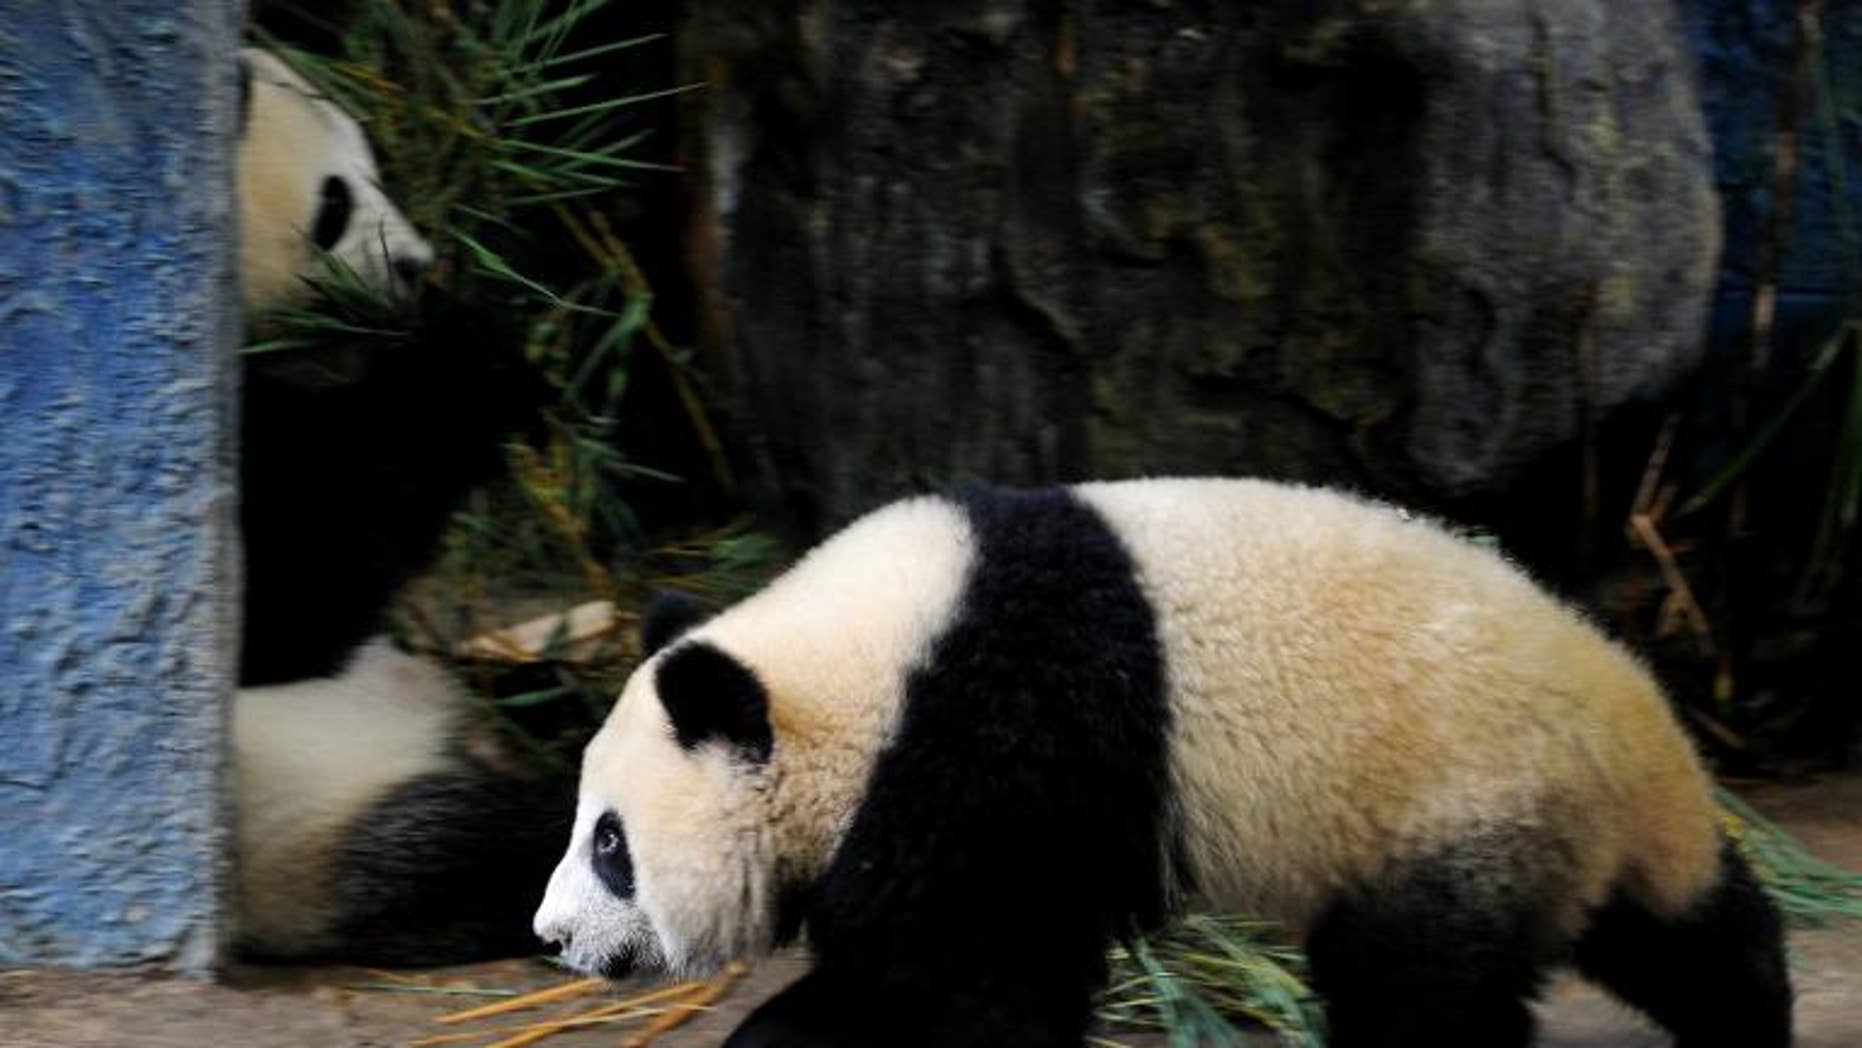 Thai panda Linping, pictured in an enclosure at Chiang Mai zoo, on September 19, 2010